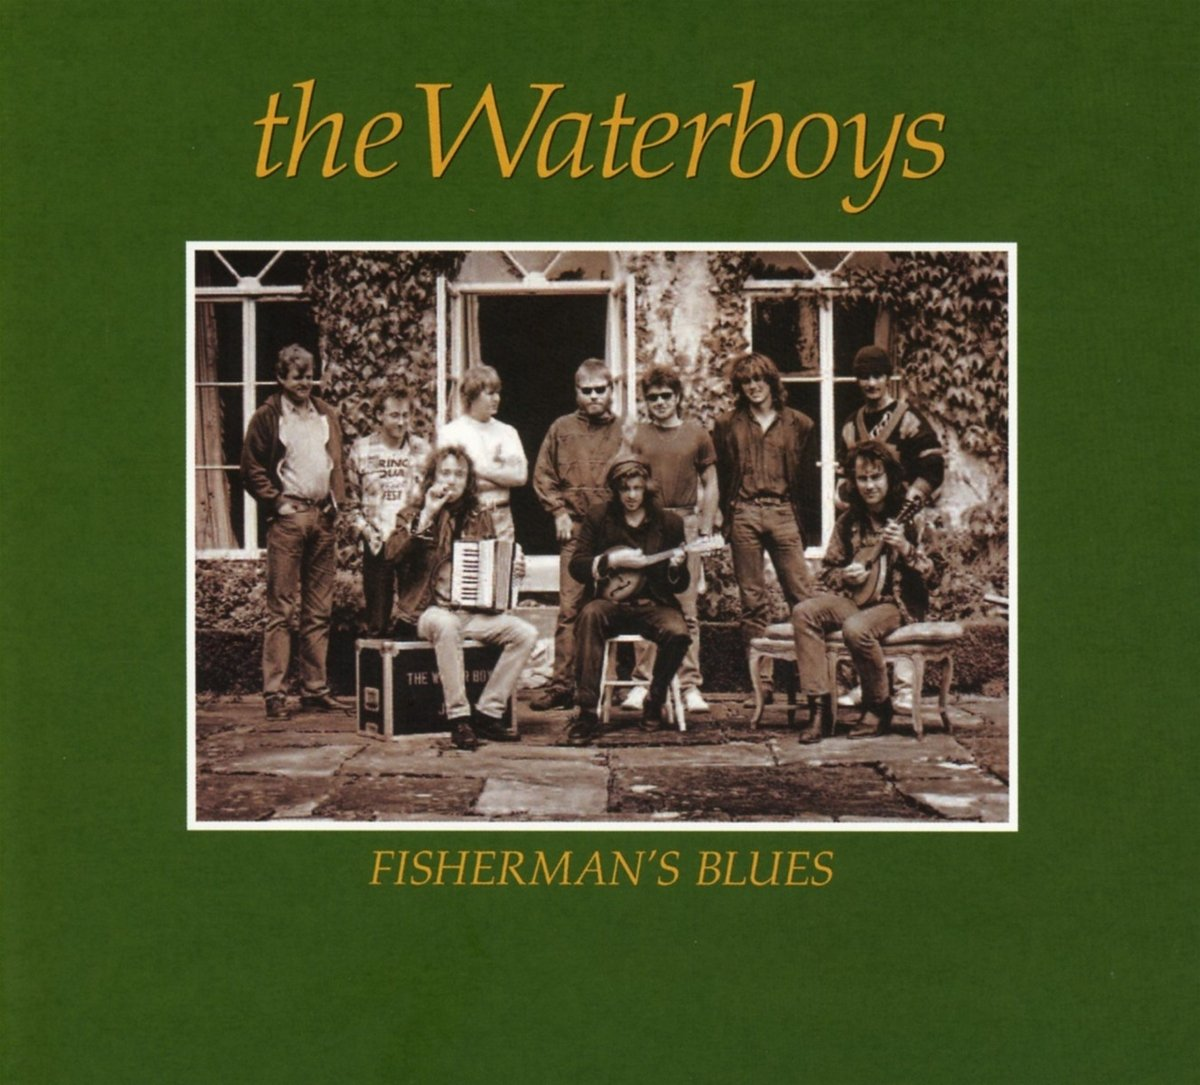 Fisherman's Blues: The Waterboys: Amazon.fr: Musique